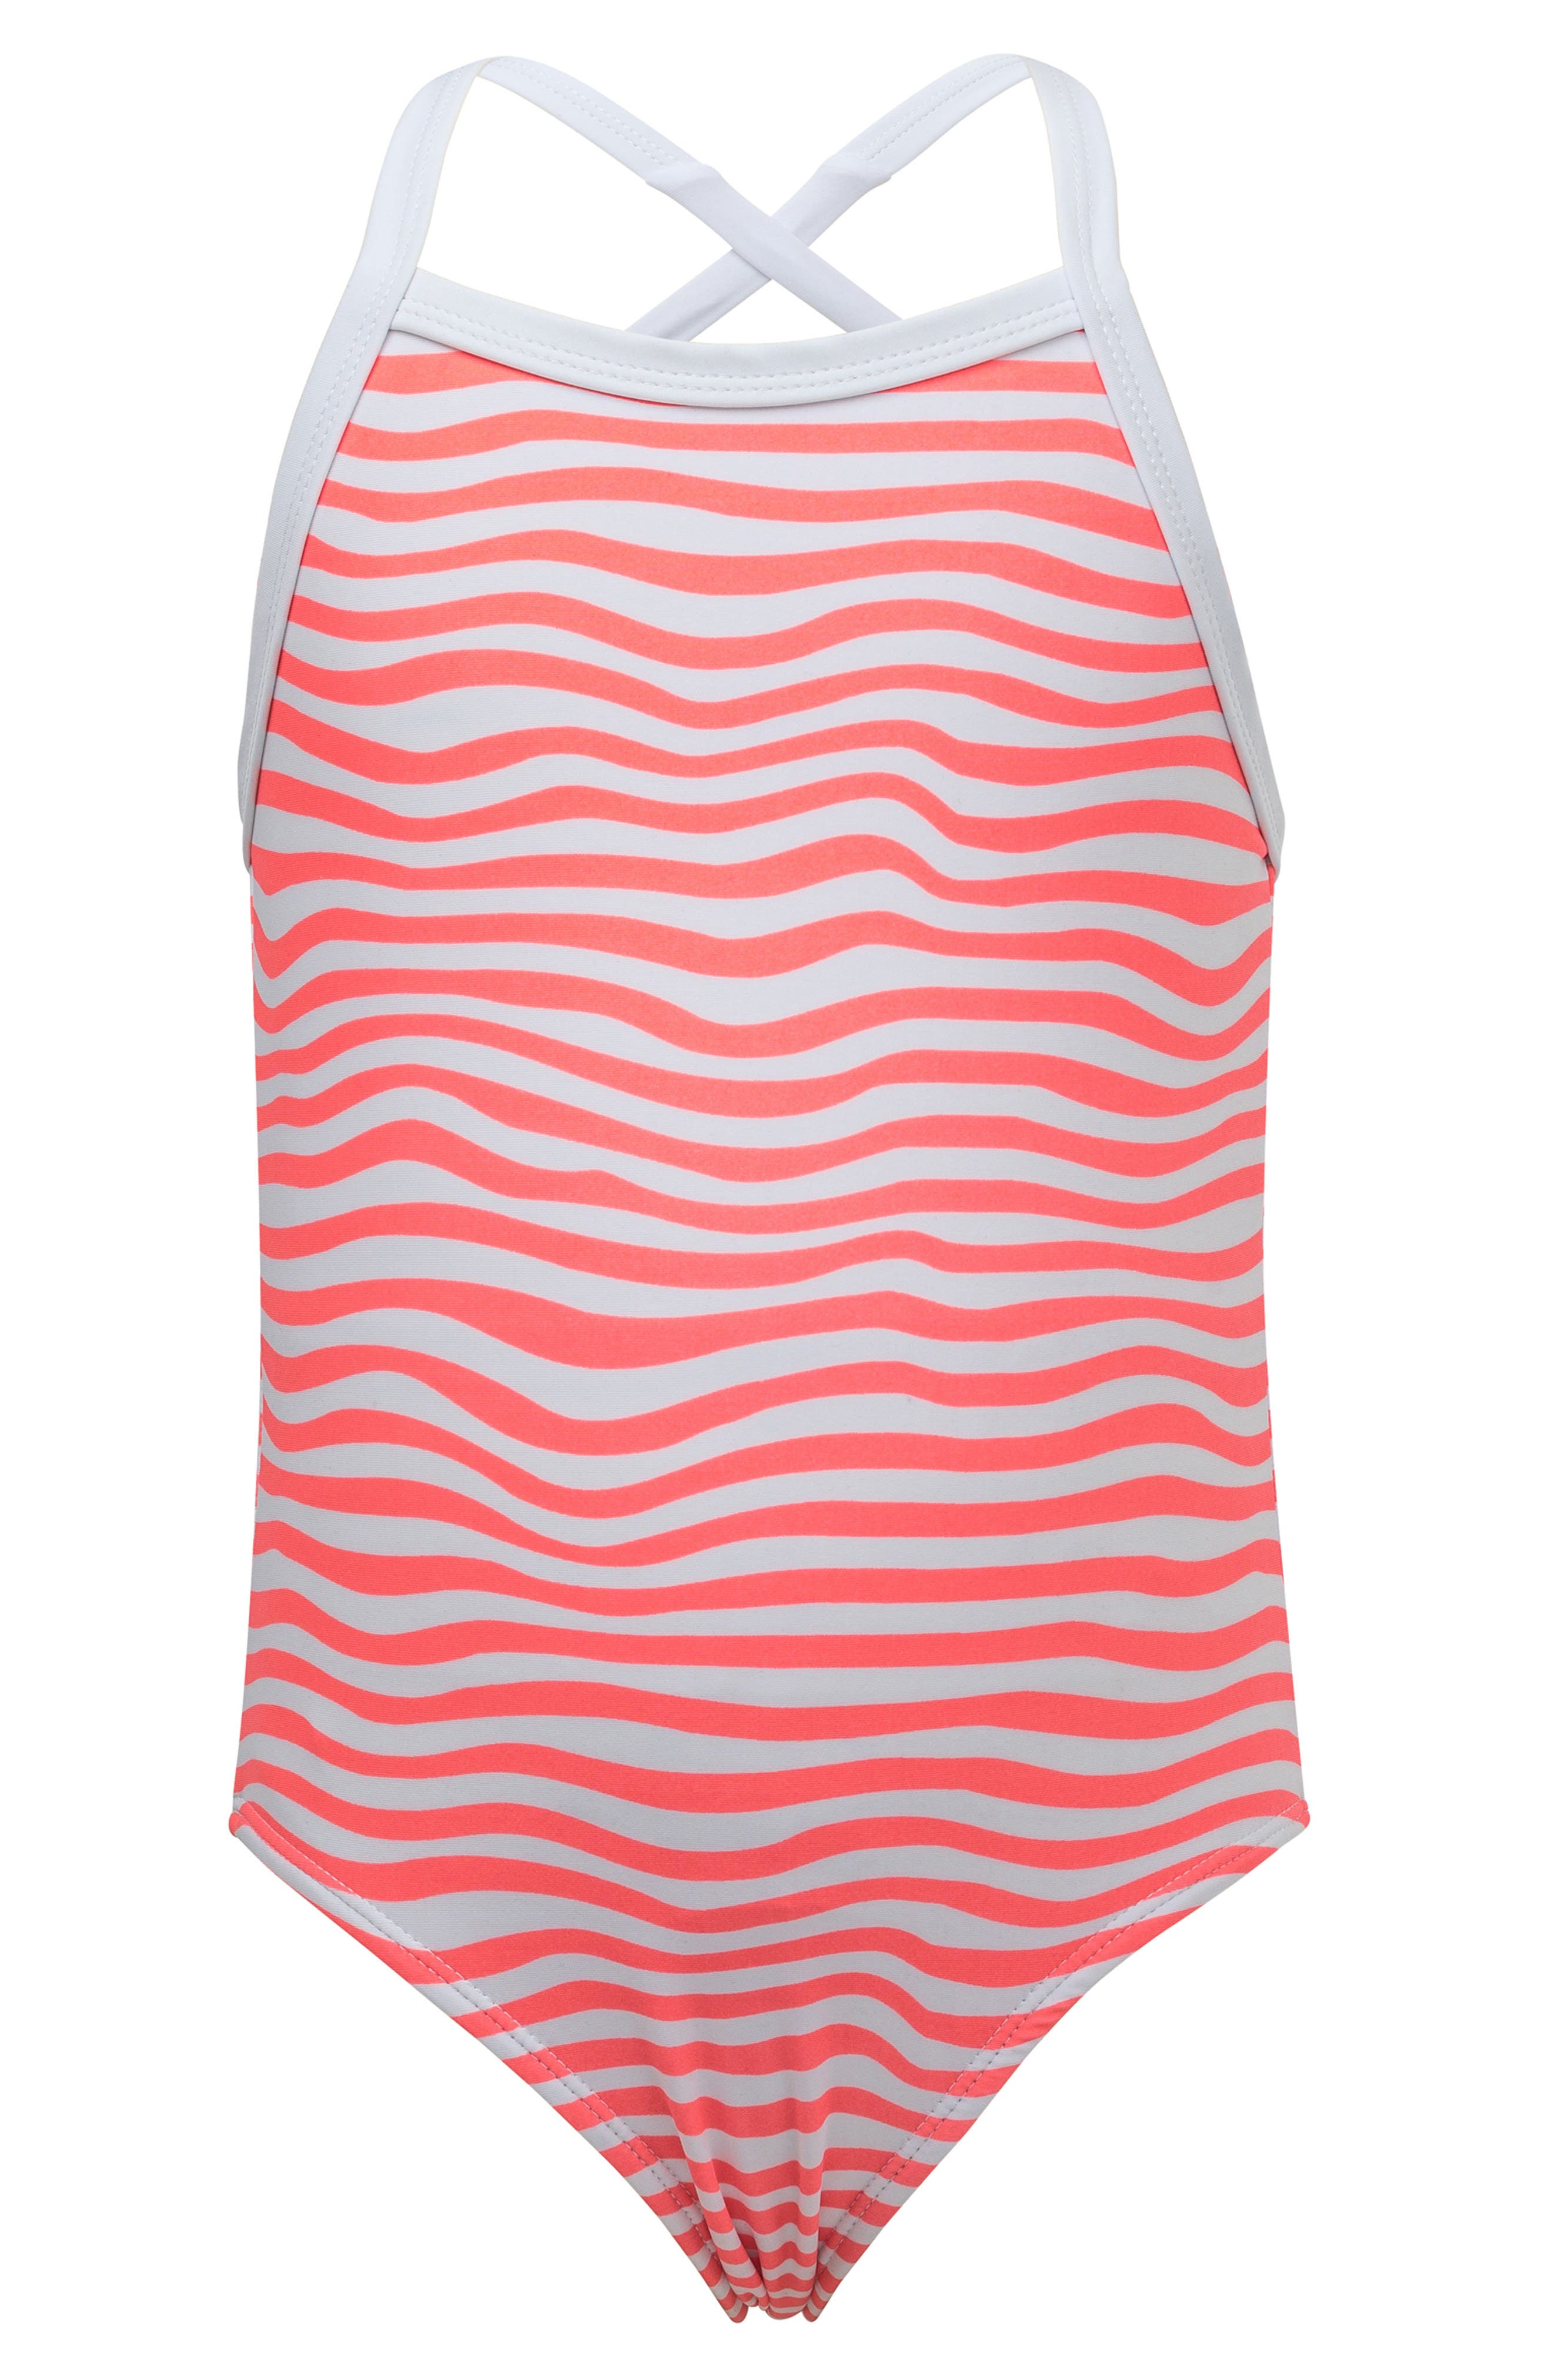 Toddler Girls Snapper Rock Orange Crush Stripe OnePiece Swimsuit Size 3T  Coral